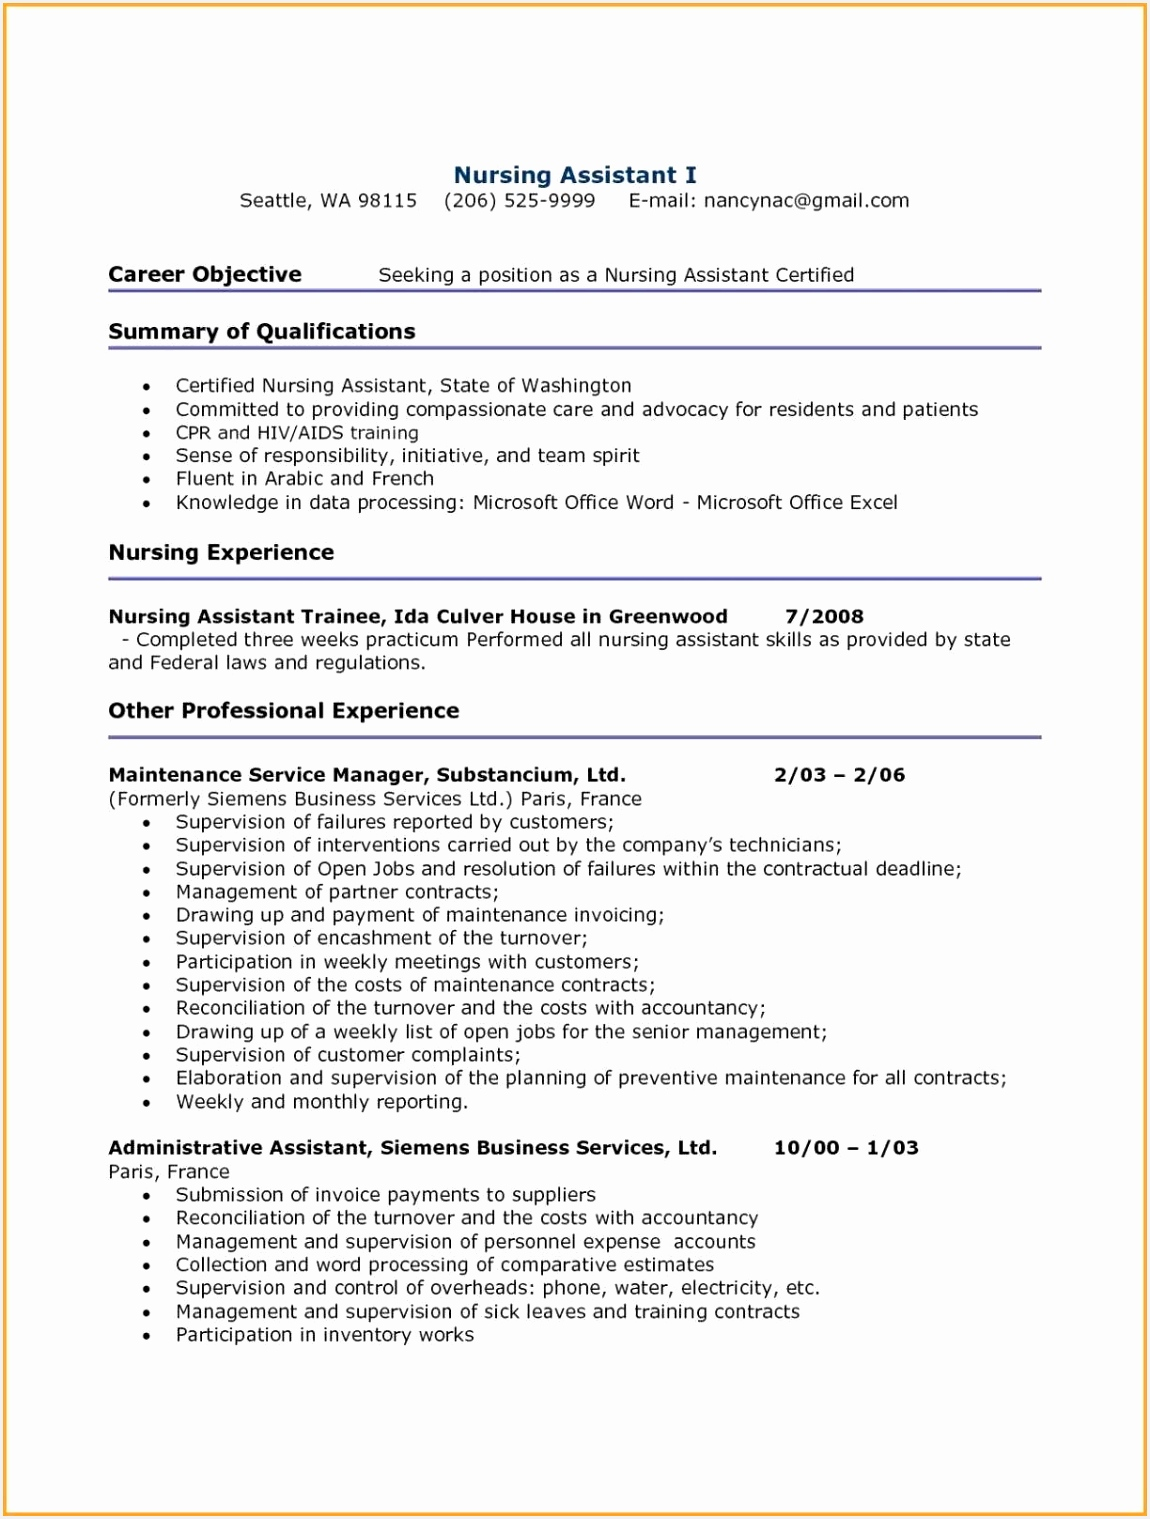 Microsoft Trainer Sample Resume Rduqf Awesome Cover Letter Email format Lovely Email Cover Letters New Resume Of Microsoft Trainer Sample Resume Dcwig Elegant 53 Elegant Microsoft Word Free Resume Templates Awesome Resume